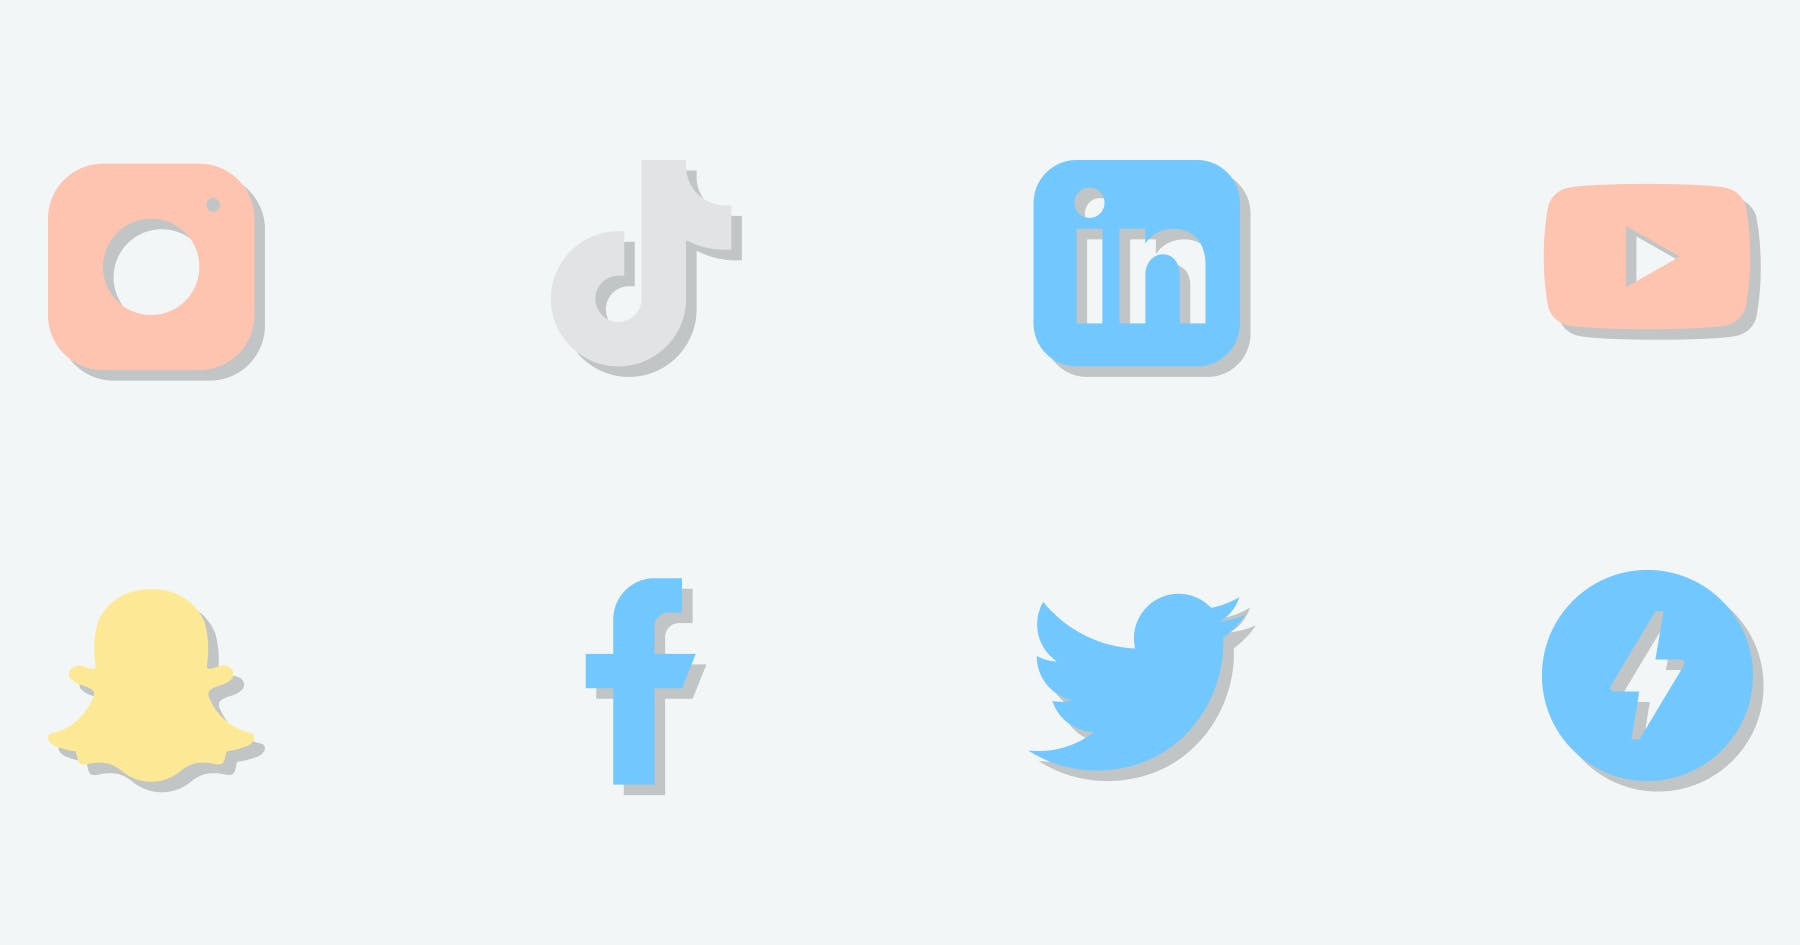 All the social media logo that produce stories